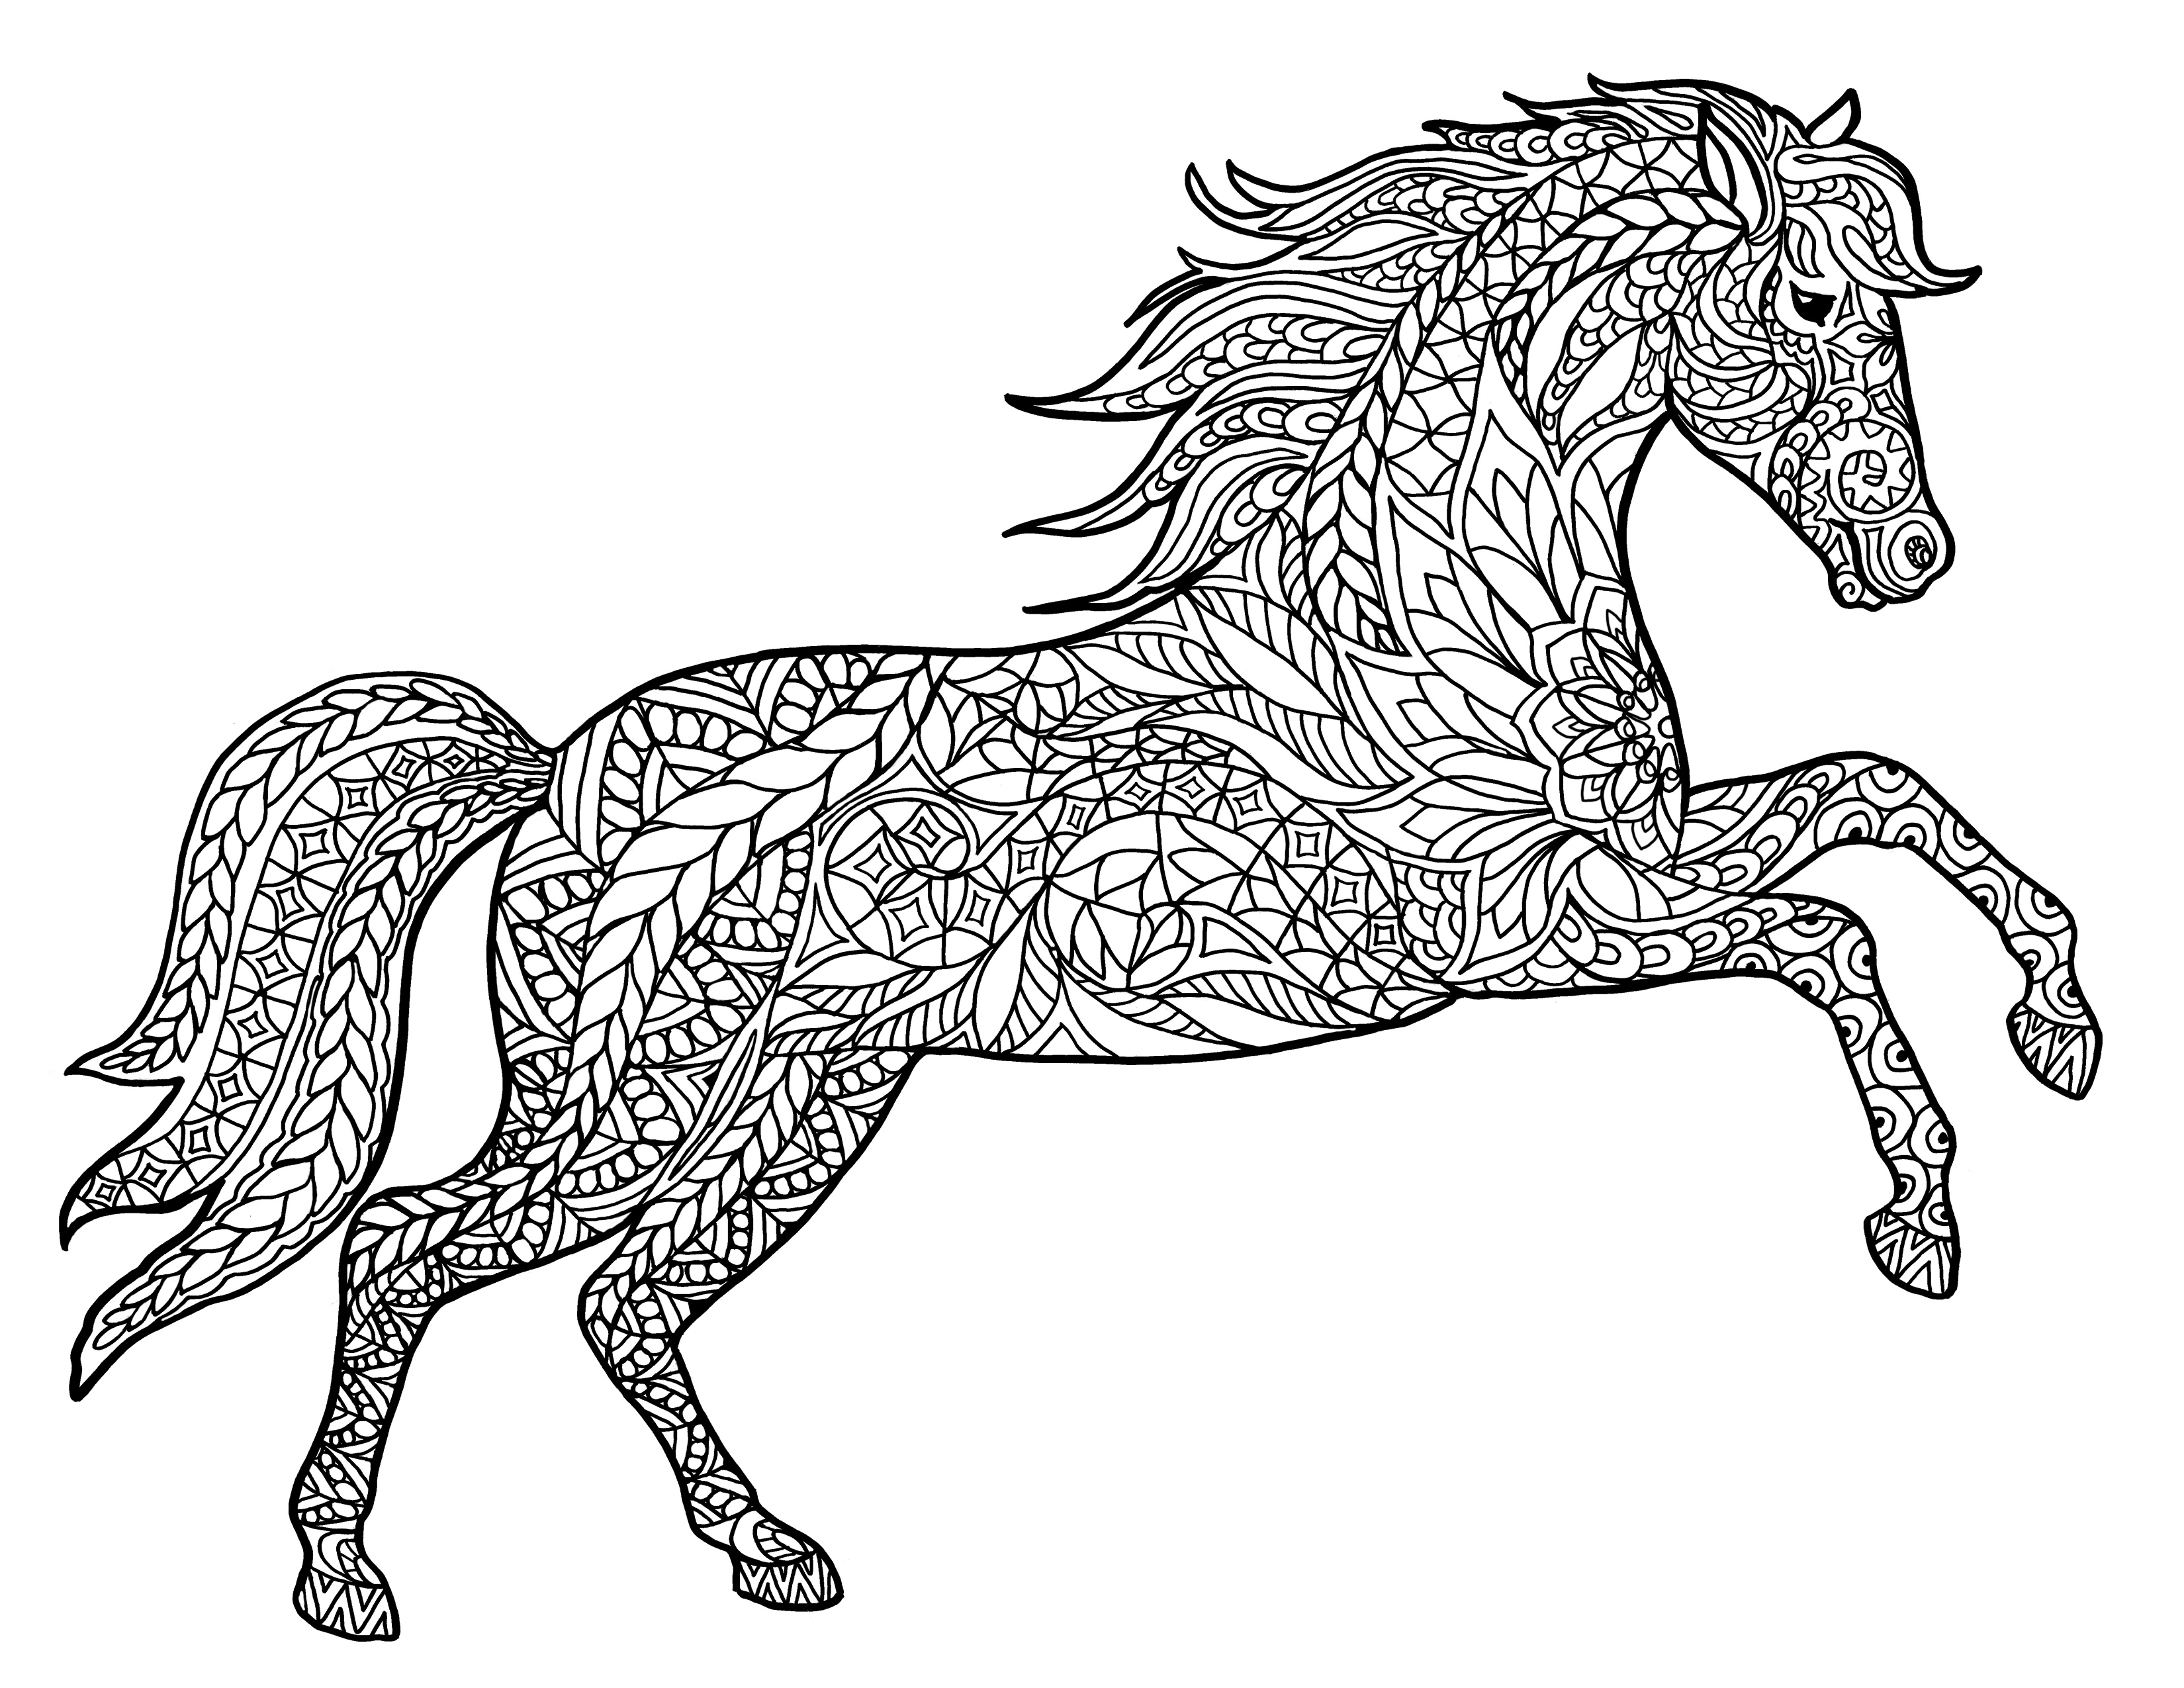 free printable animal colouring pages free printable coloring pages animals 2015 colouring printable animal free pages